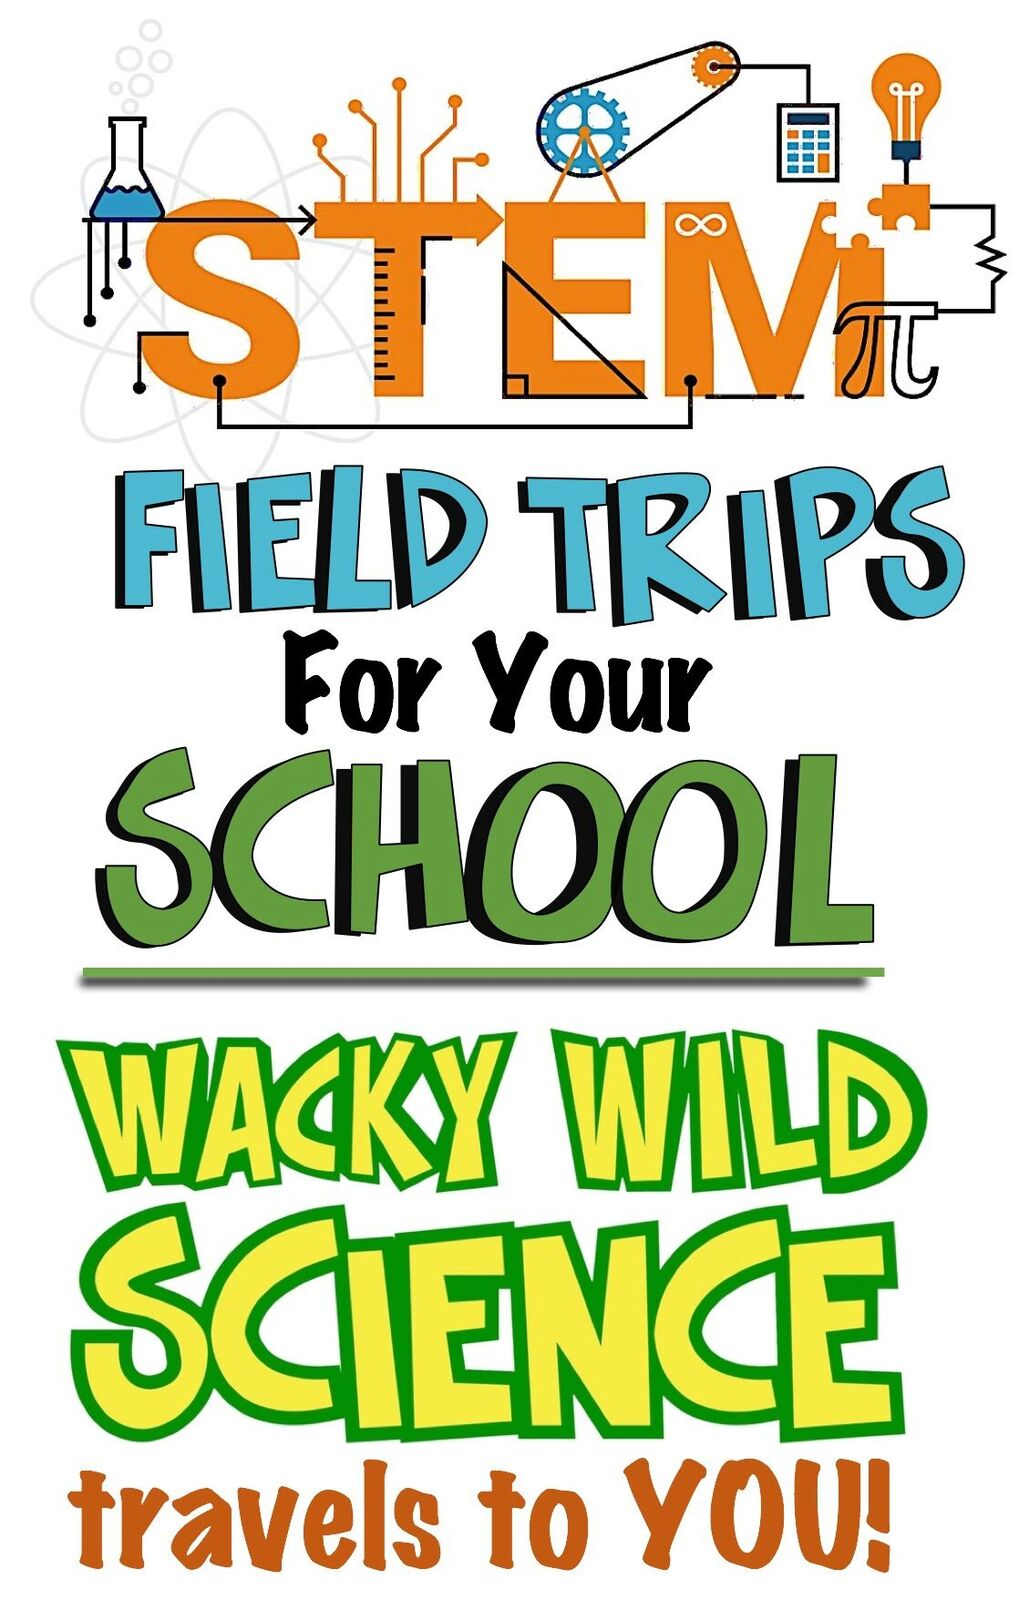 science field trips Teacher-led school field trips inspire students to ask questions and understand the impact of science on their lives.